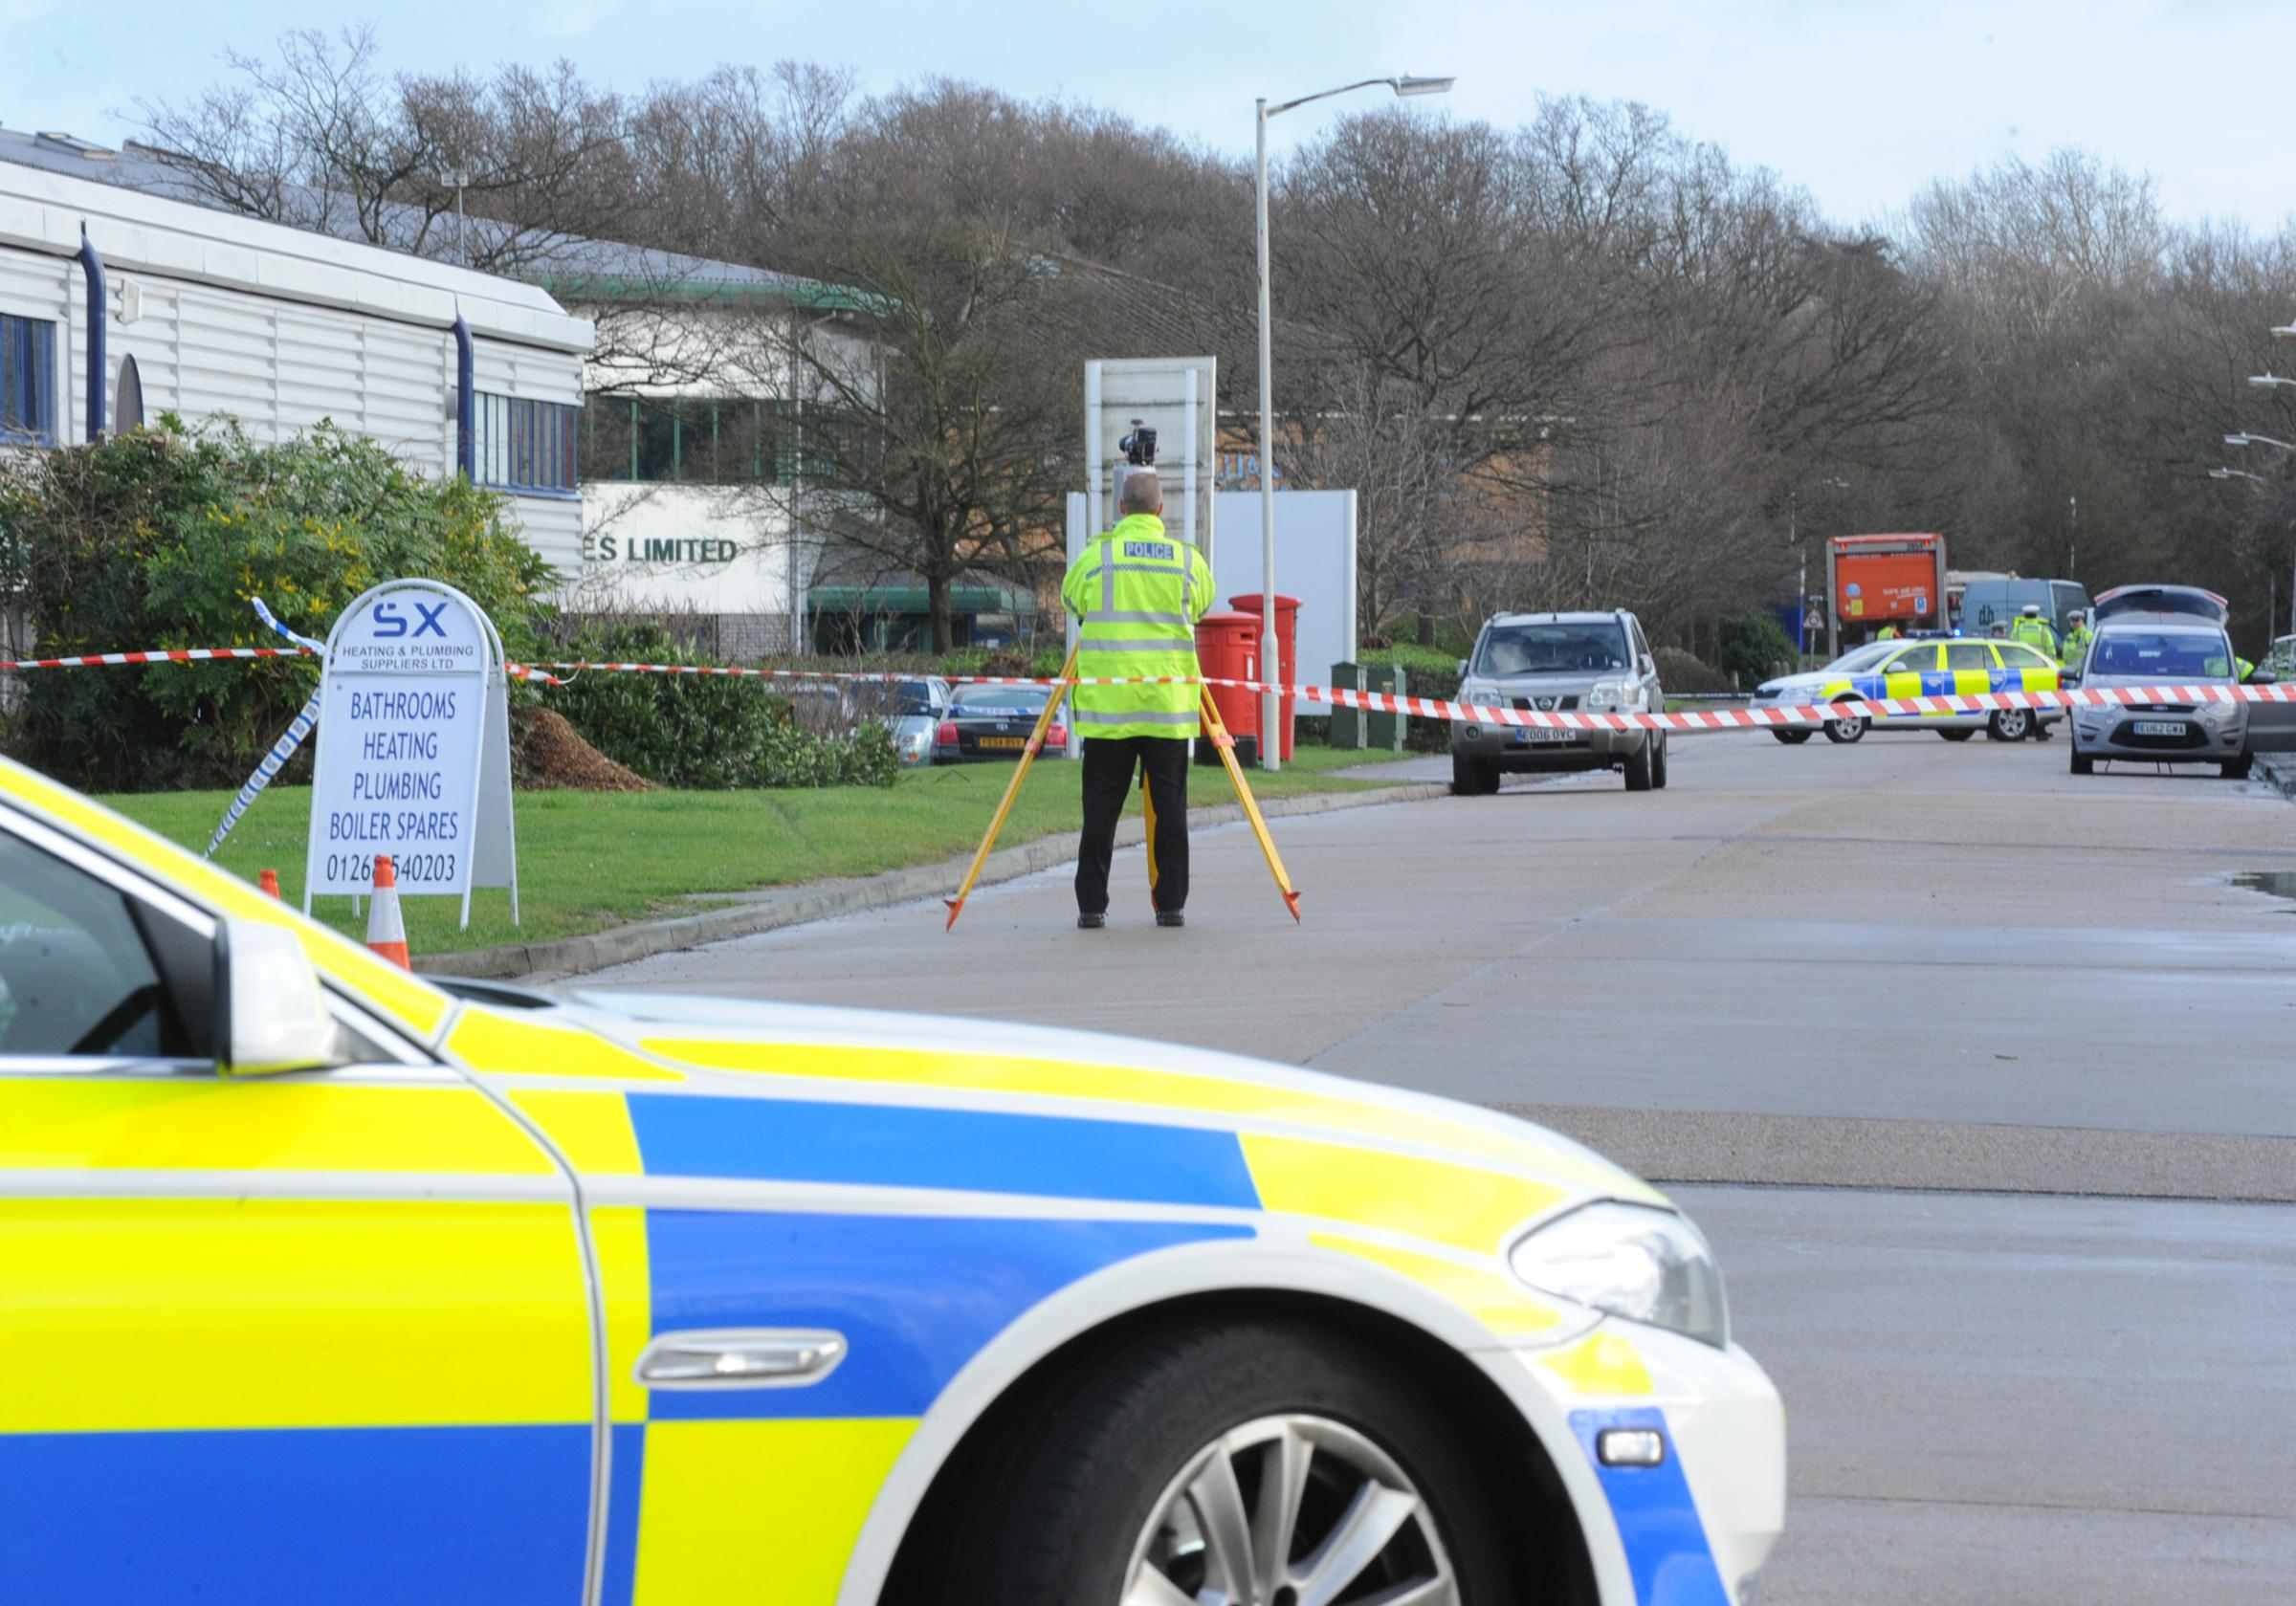 Emergency services at scene of serious crash in basildon